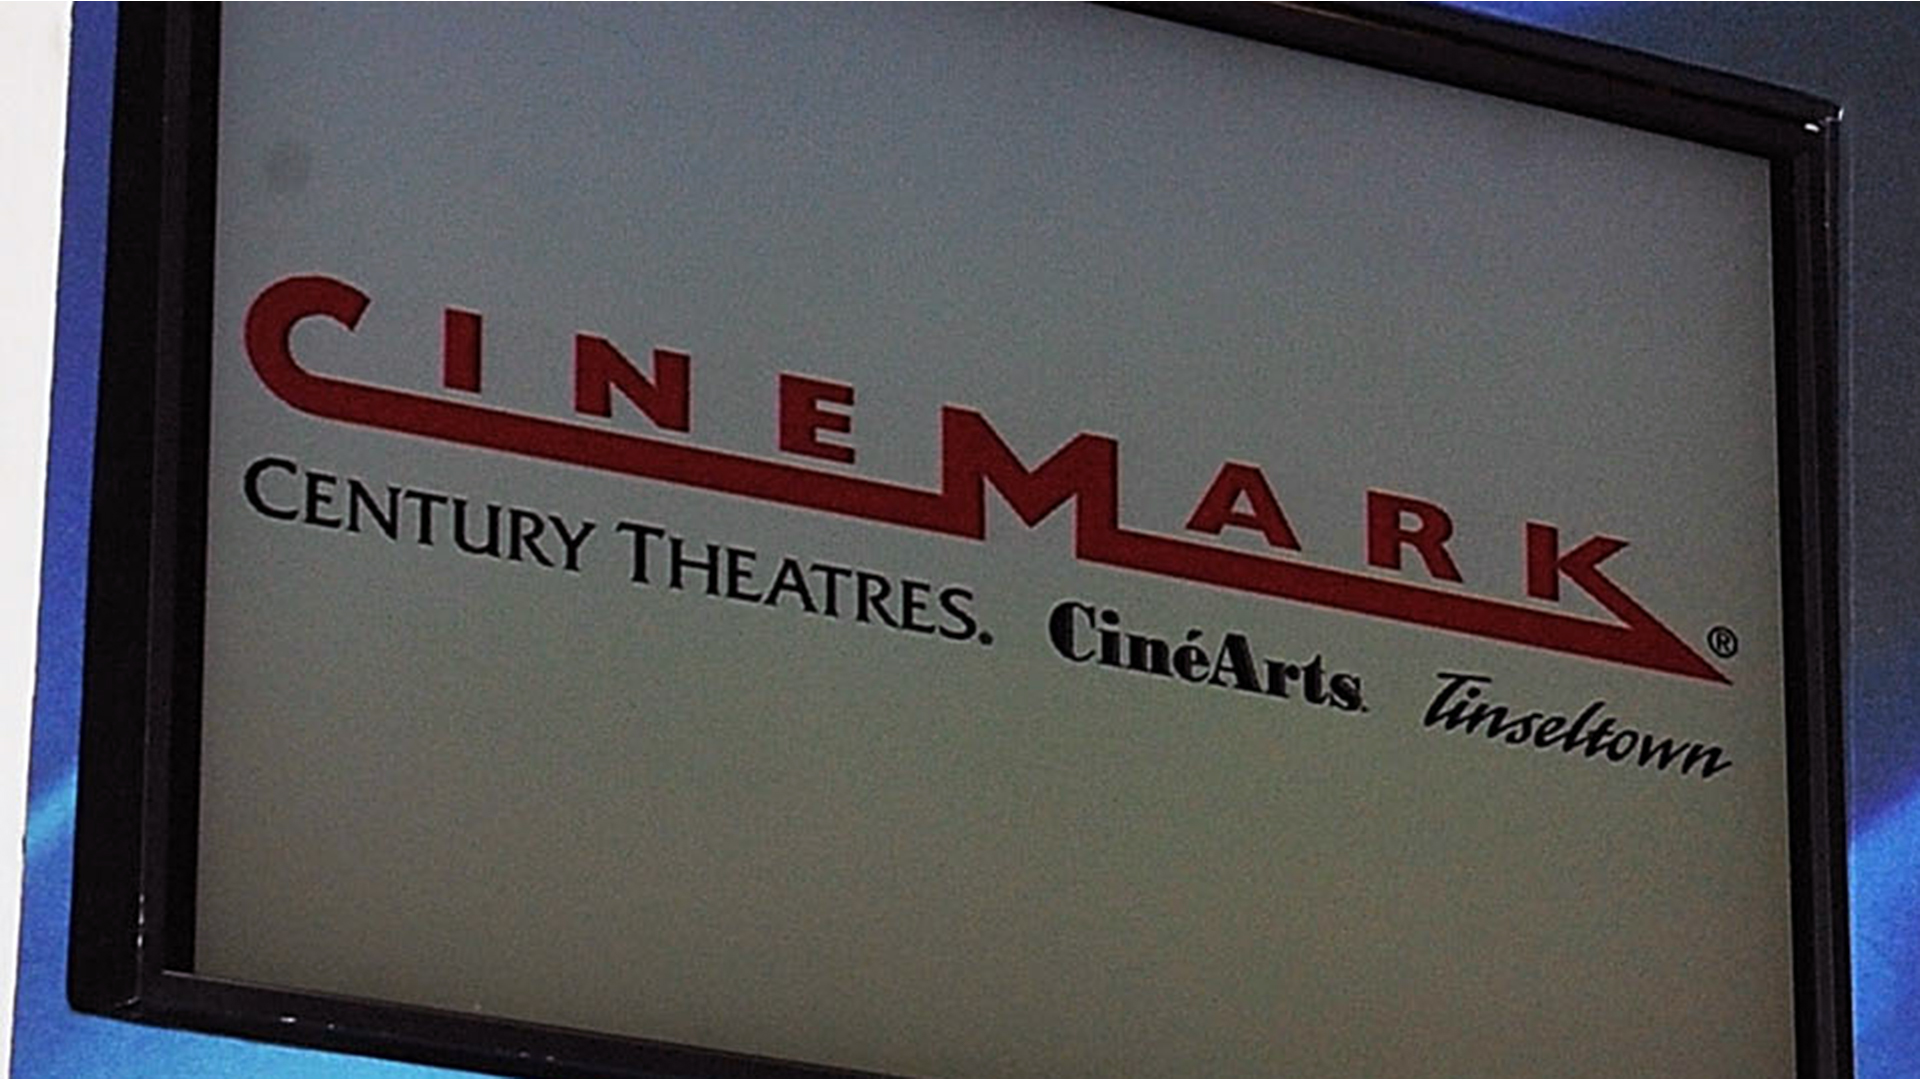 Cinemark movie theater sign-159532.jpg40822542